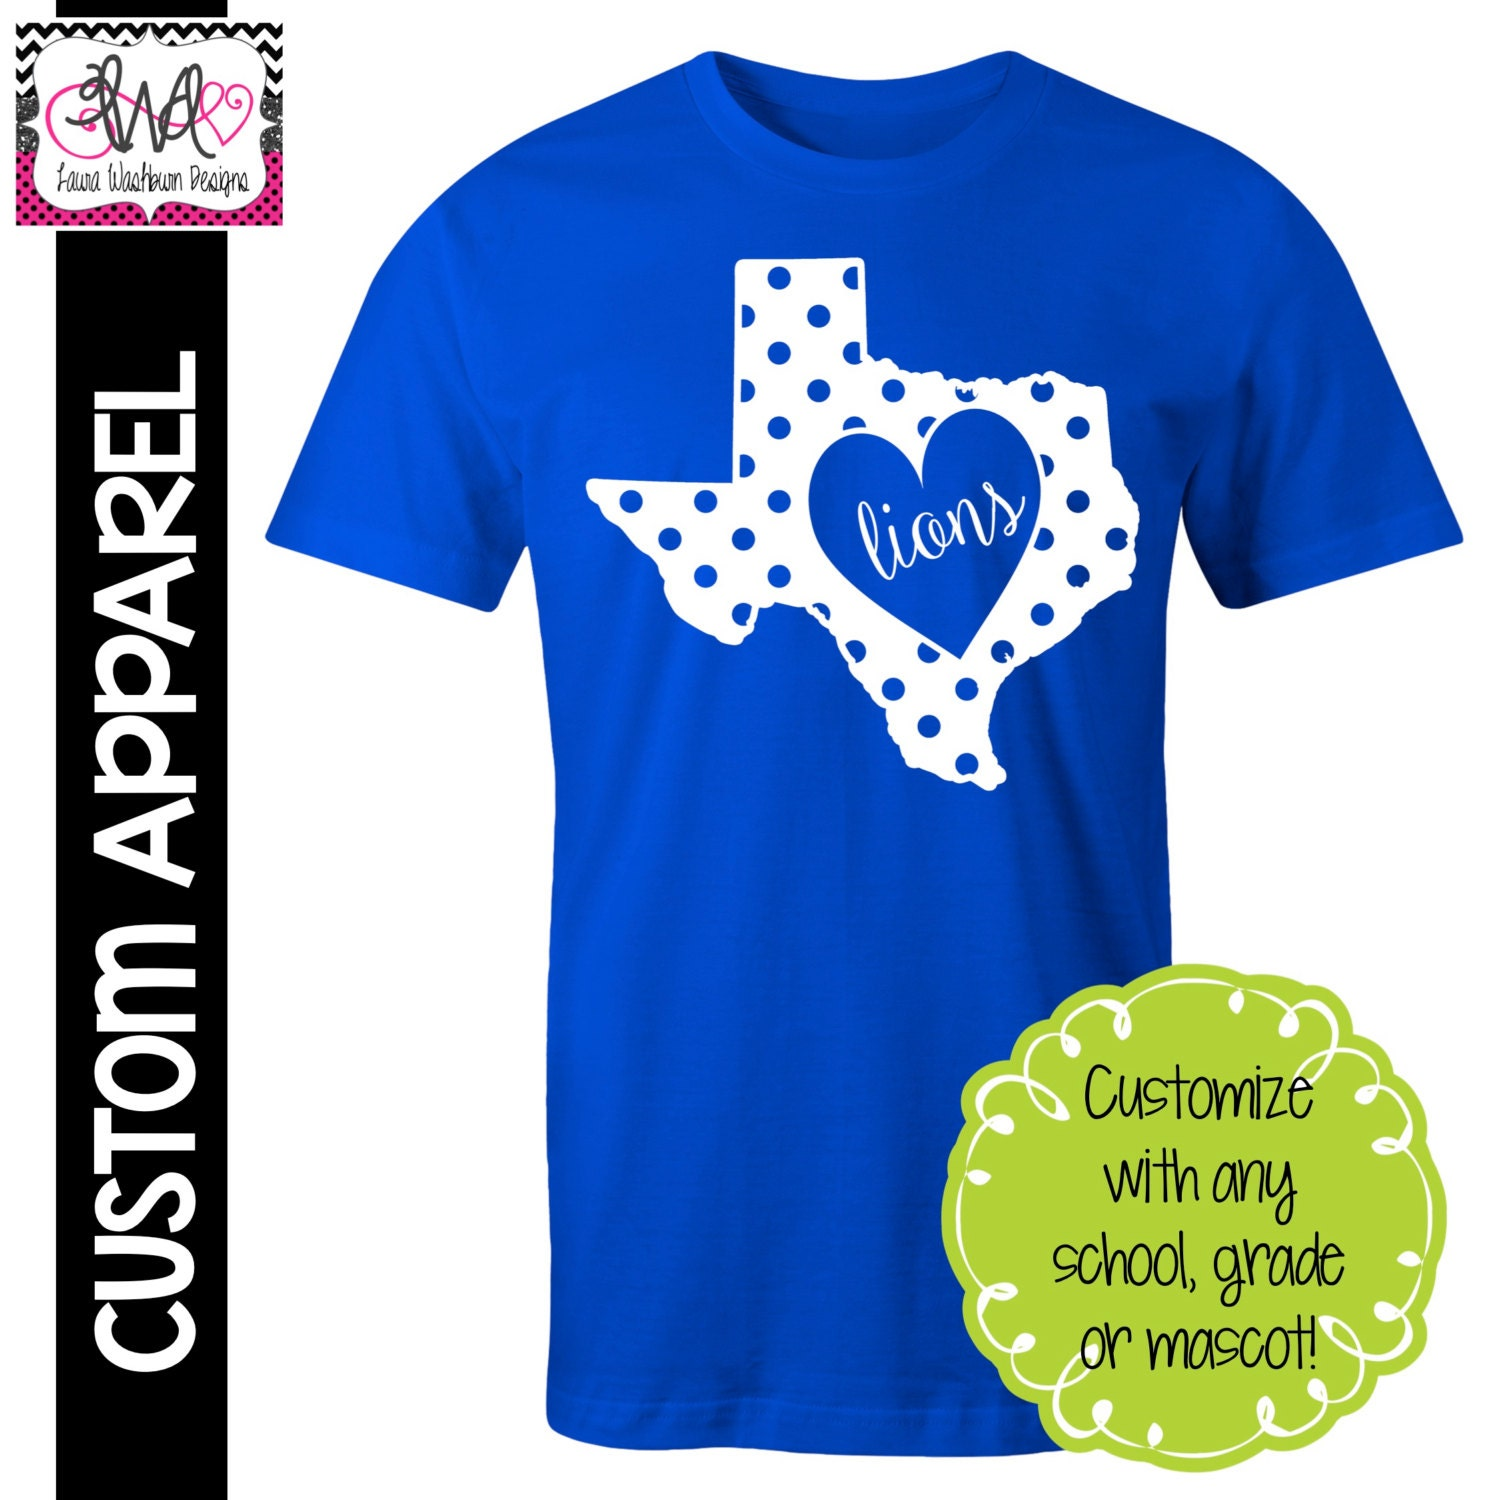 custom apparel custom polka dot state pride school spirit t shirt customize for your state. Black Bedroom Furniture Sets. Home Design Ideas